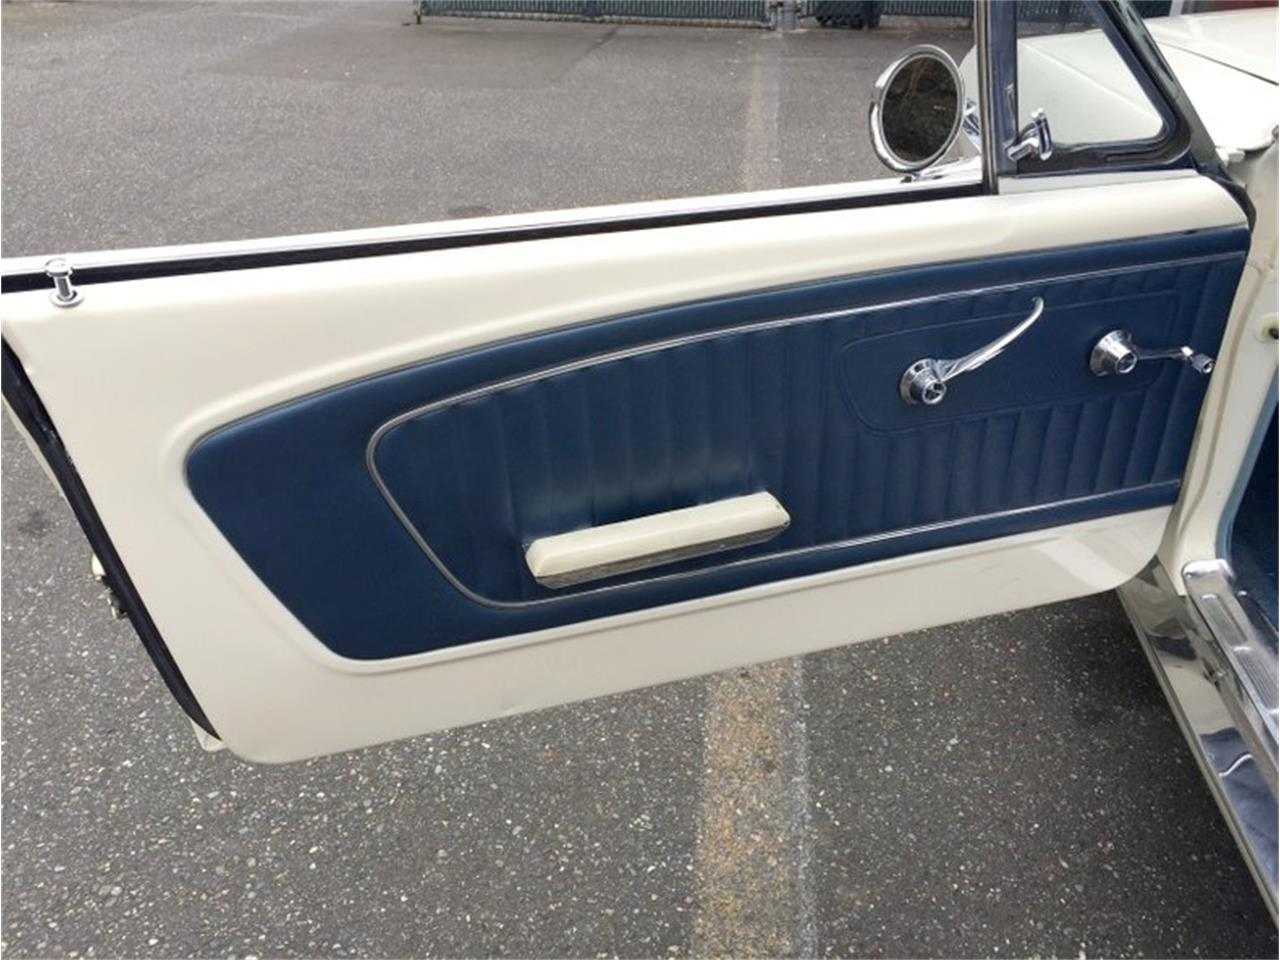 Large Picture of 1964 Mustang located in Seattle Washington Auction Vehicle Offered by Drager's Classics - LDIN